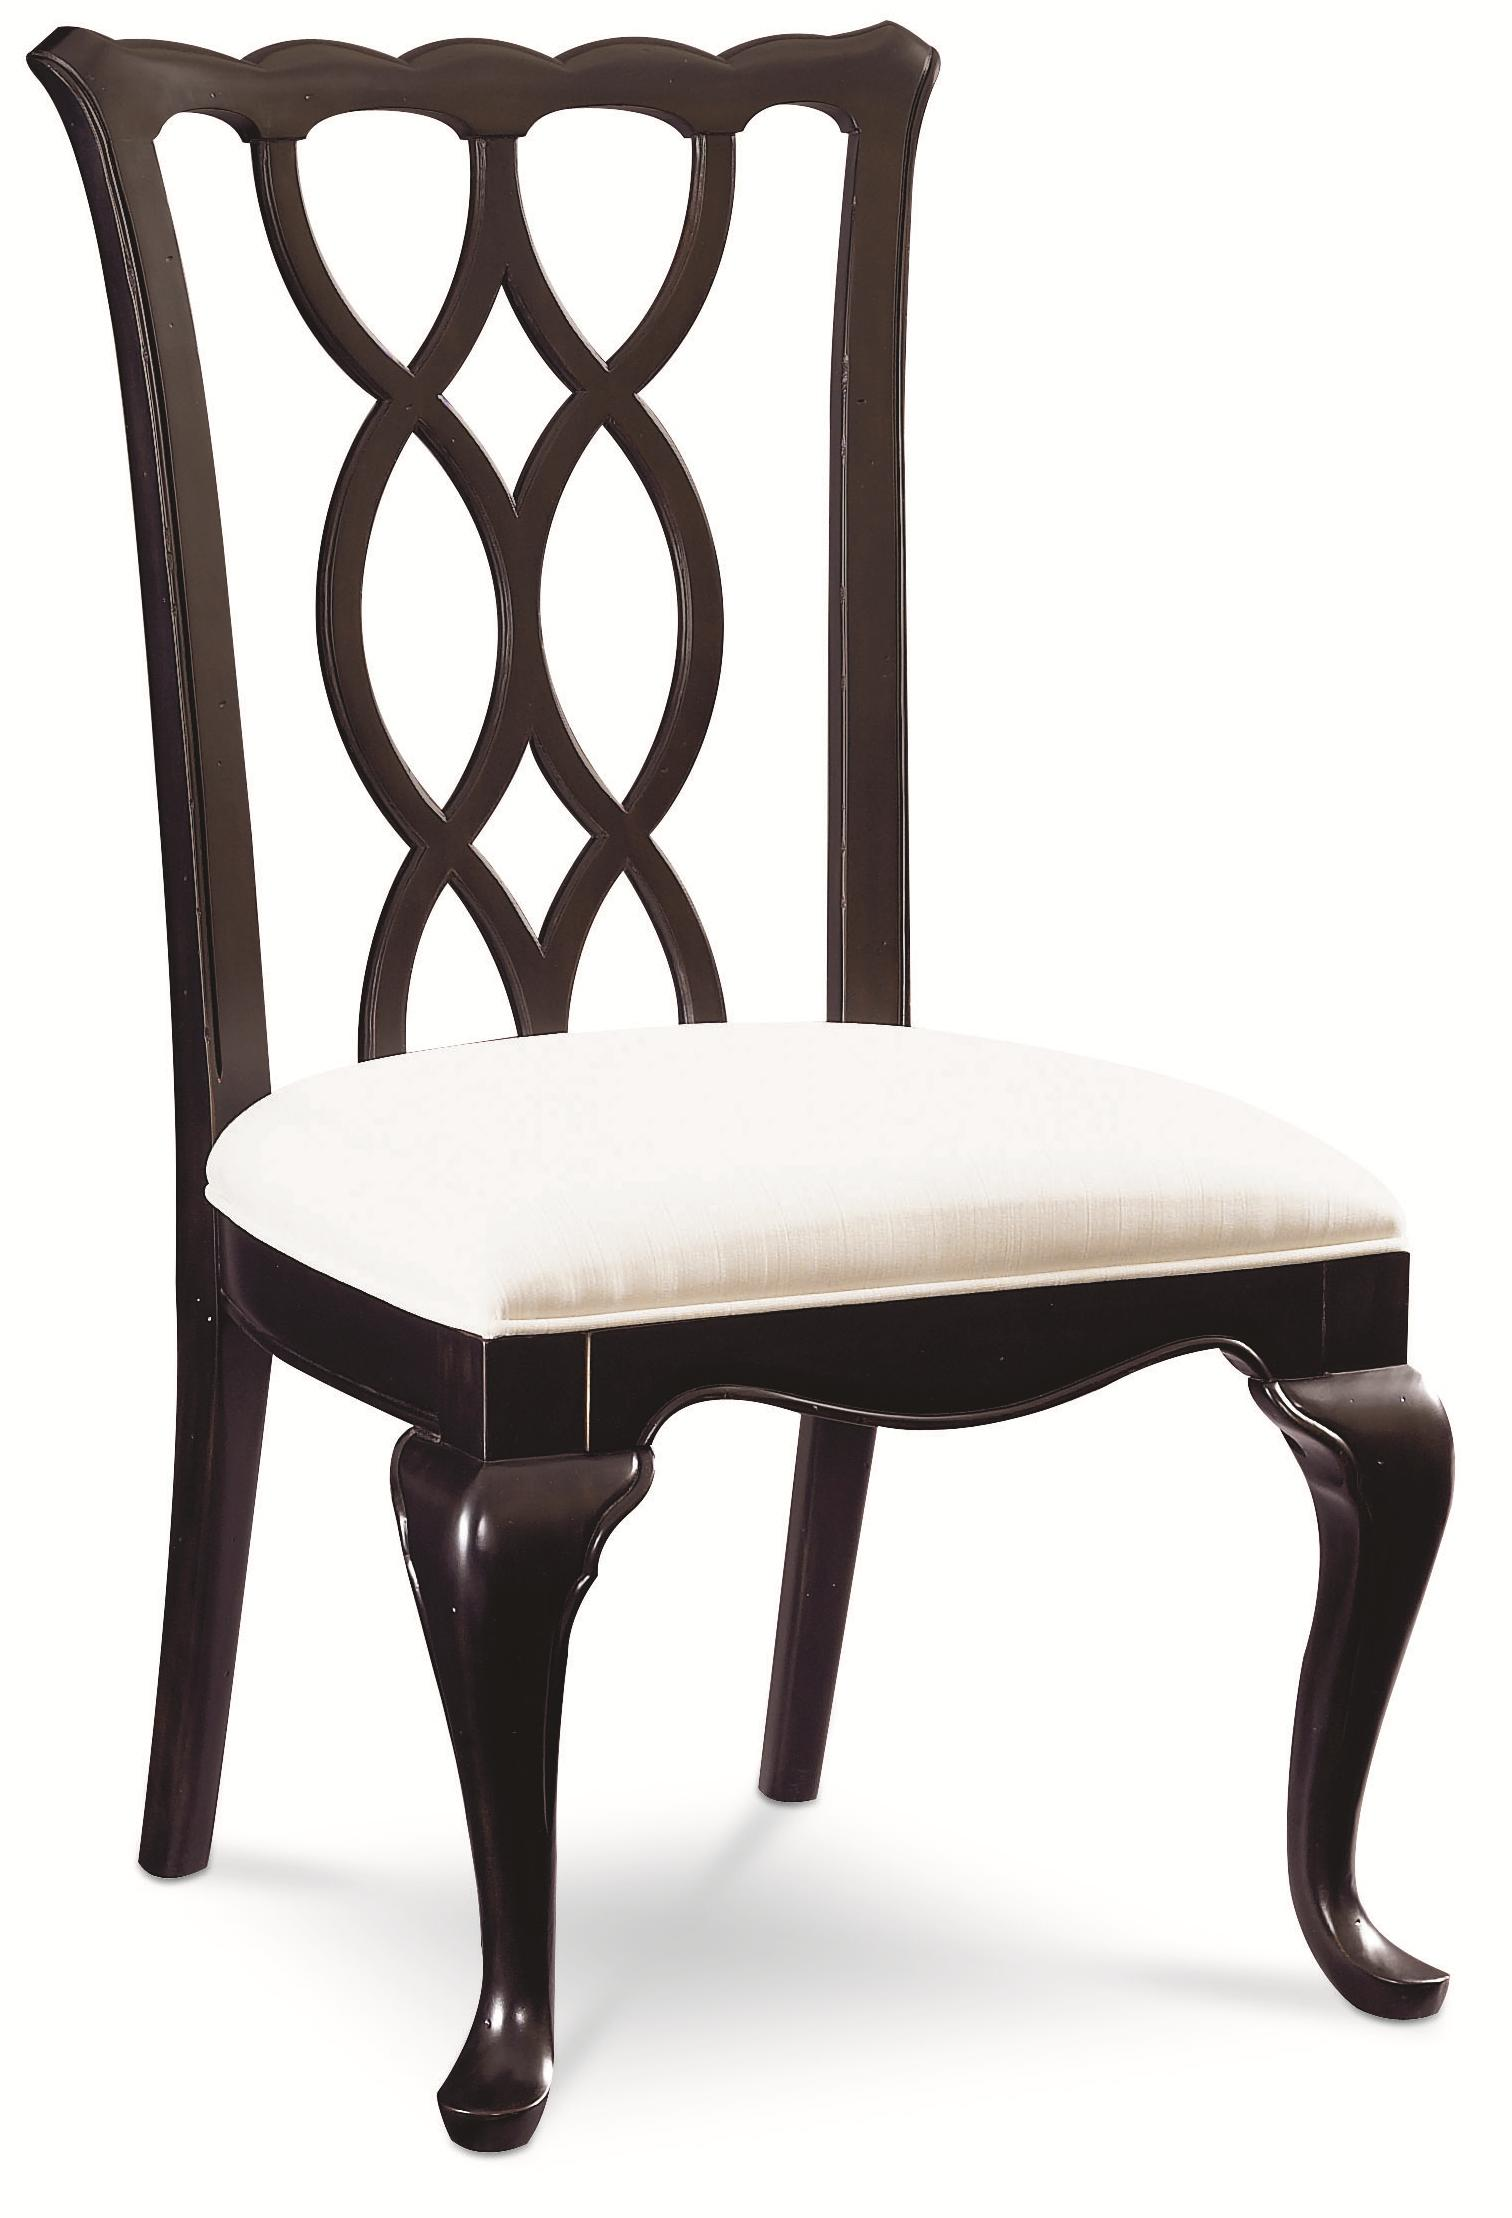 Thomasville® Tate Street Side Chair - Item Number: 46829-831